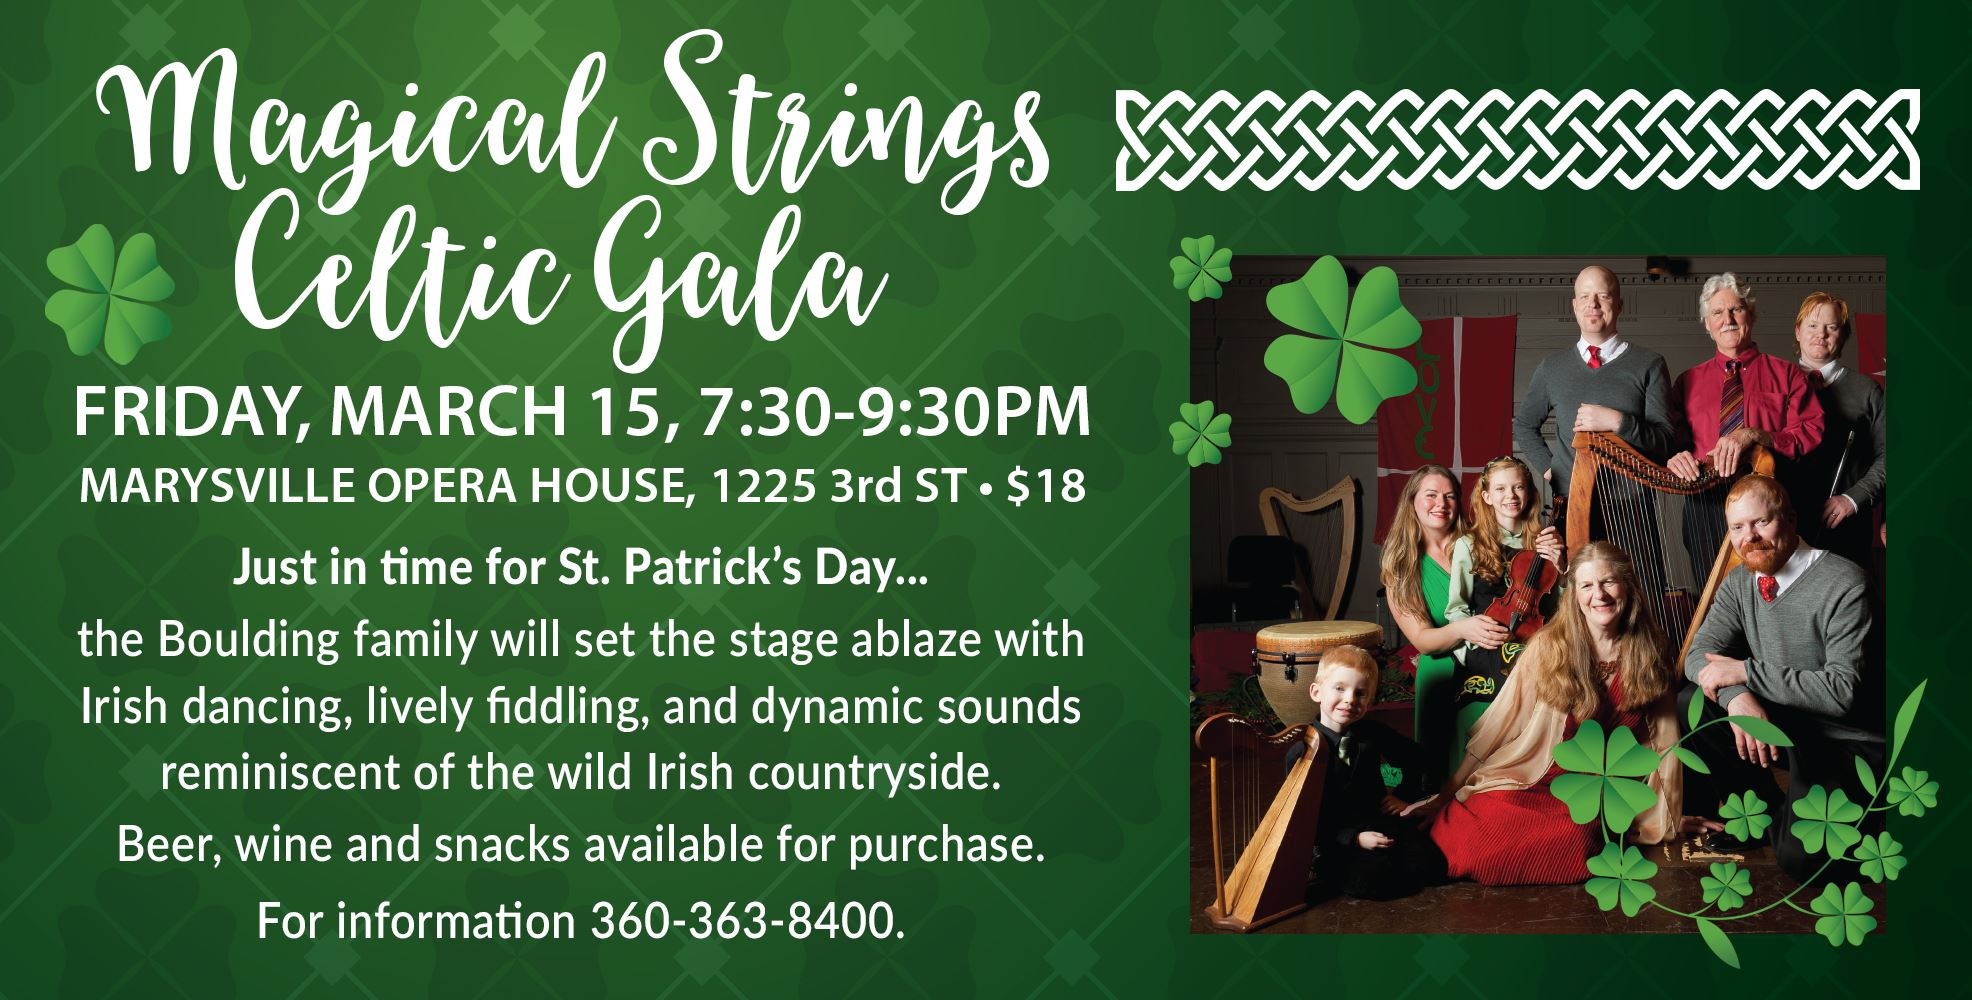 Magical Strings Celtic Gala Tile